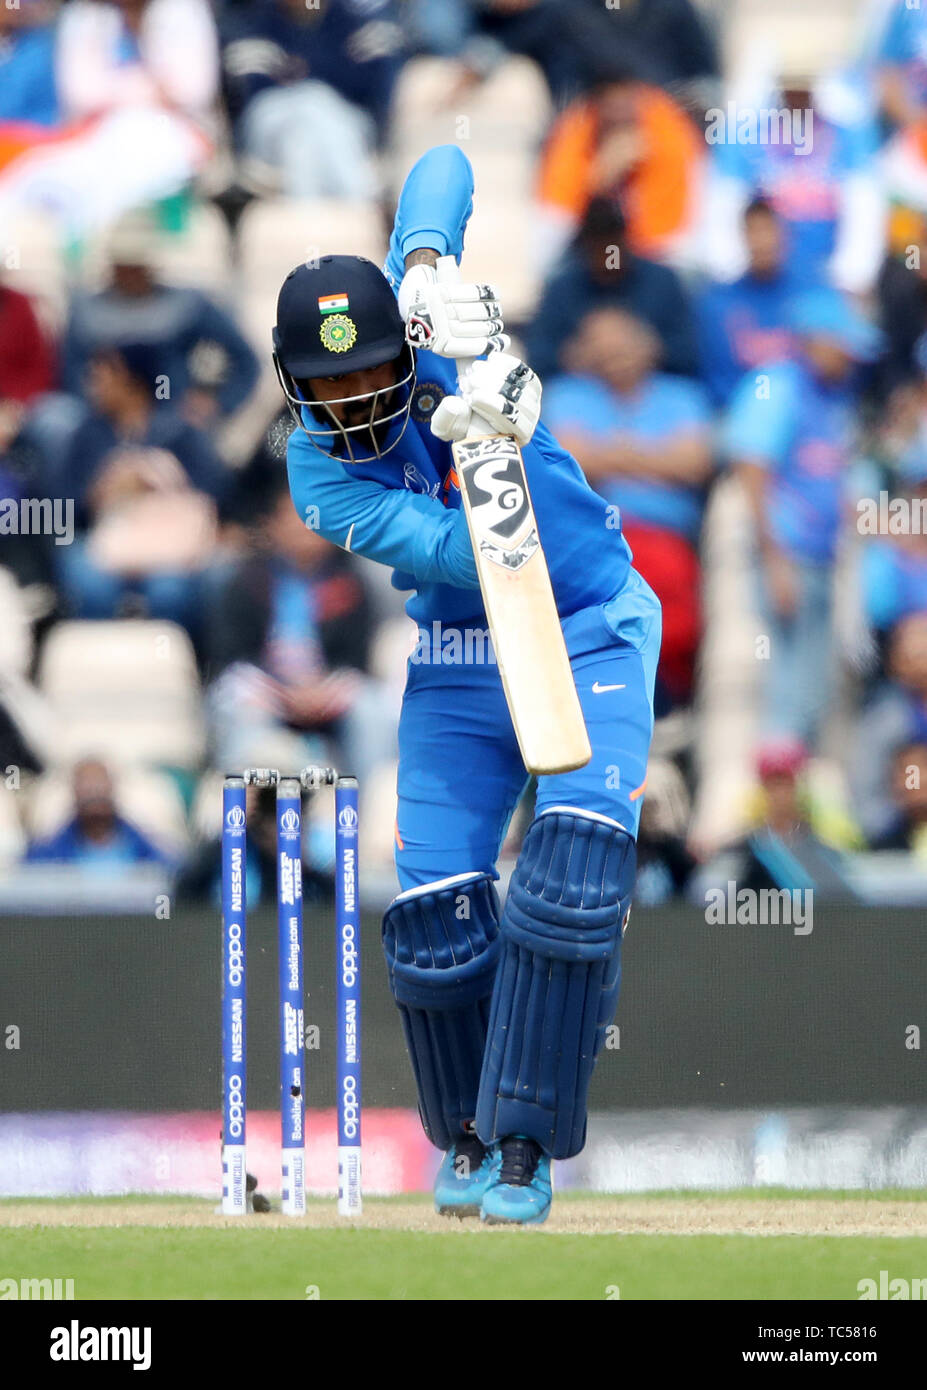 India's KL Rahul in action during the ICC Cricket World Cup group stage match at the Hampshire Bowl, Southampton. Stock Photo